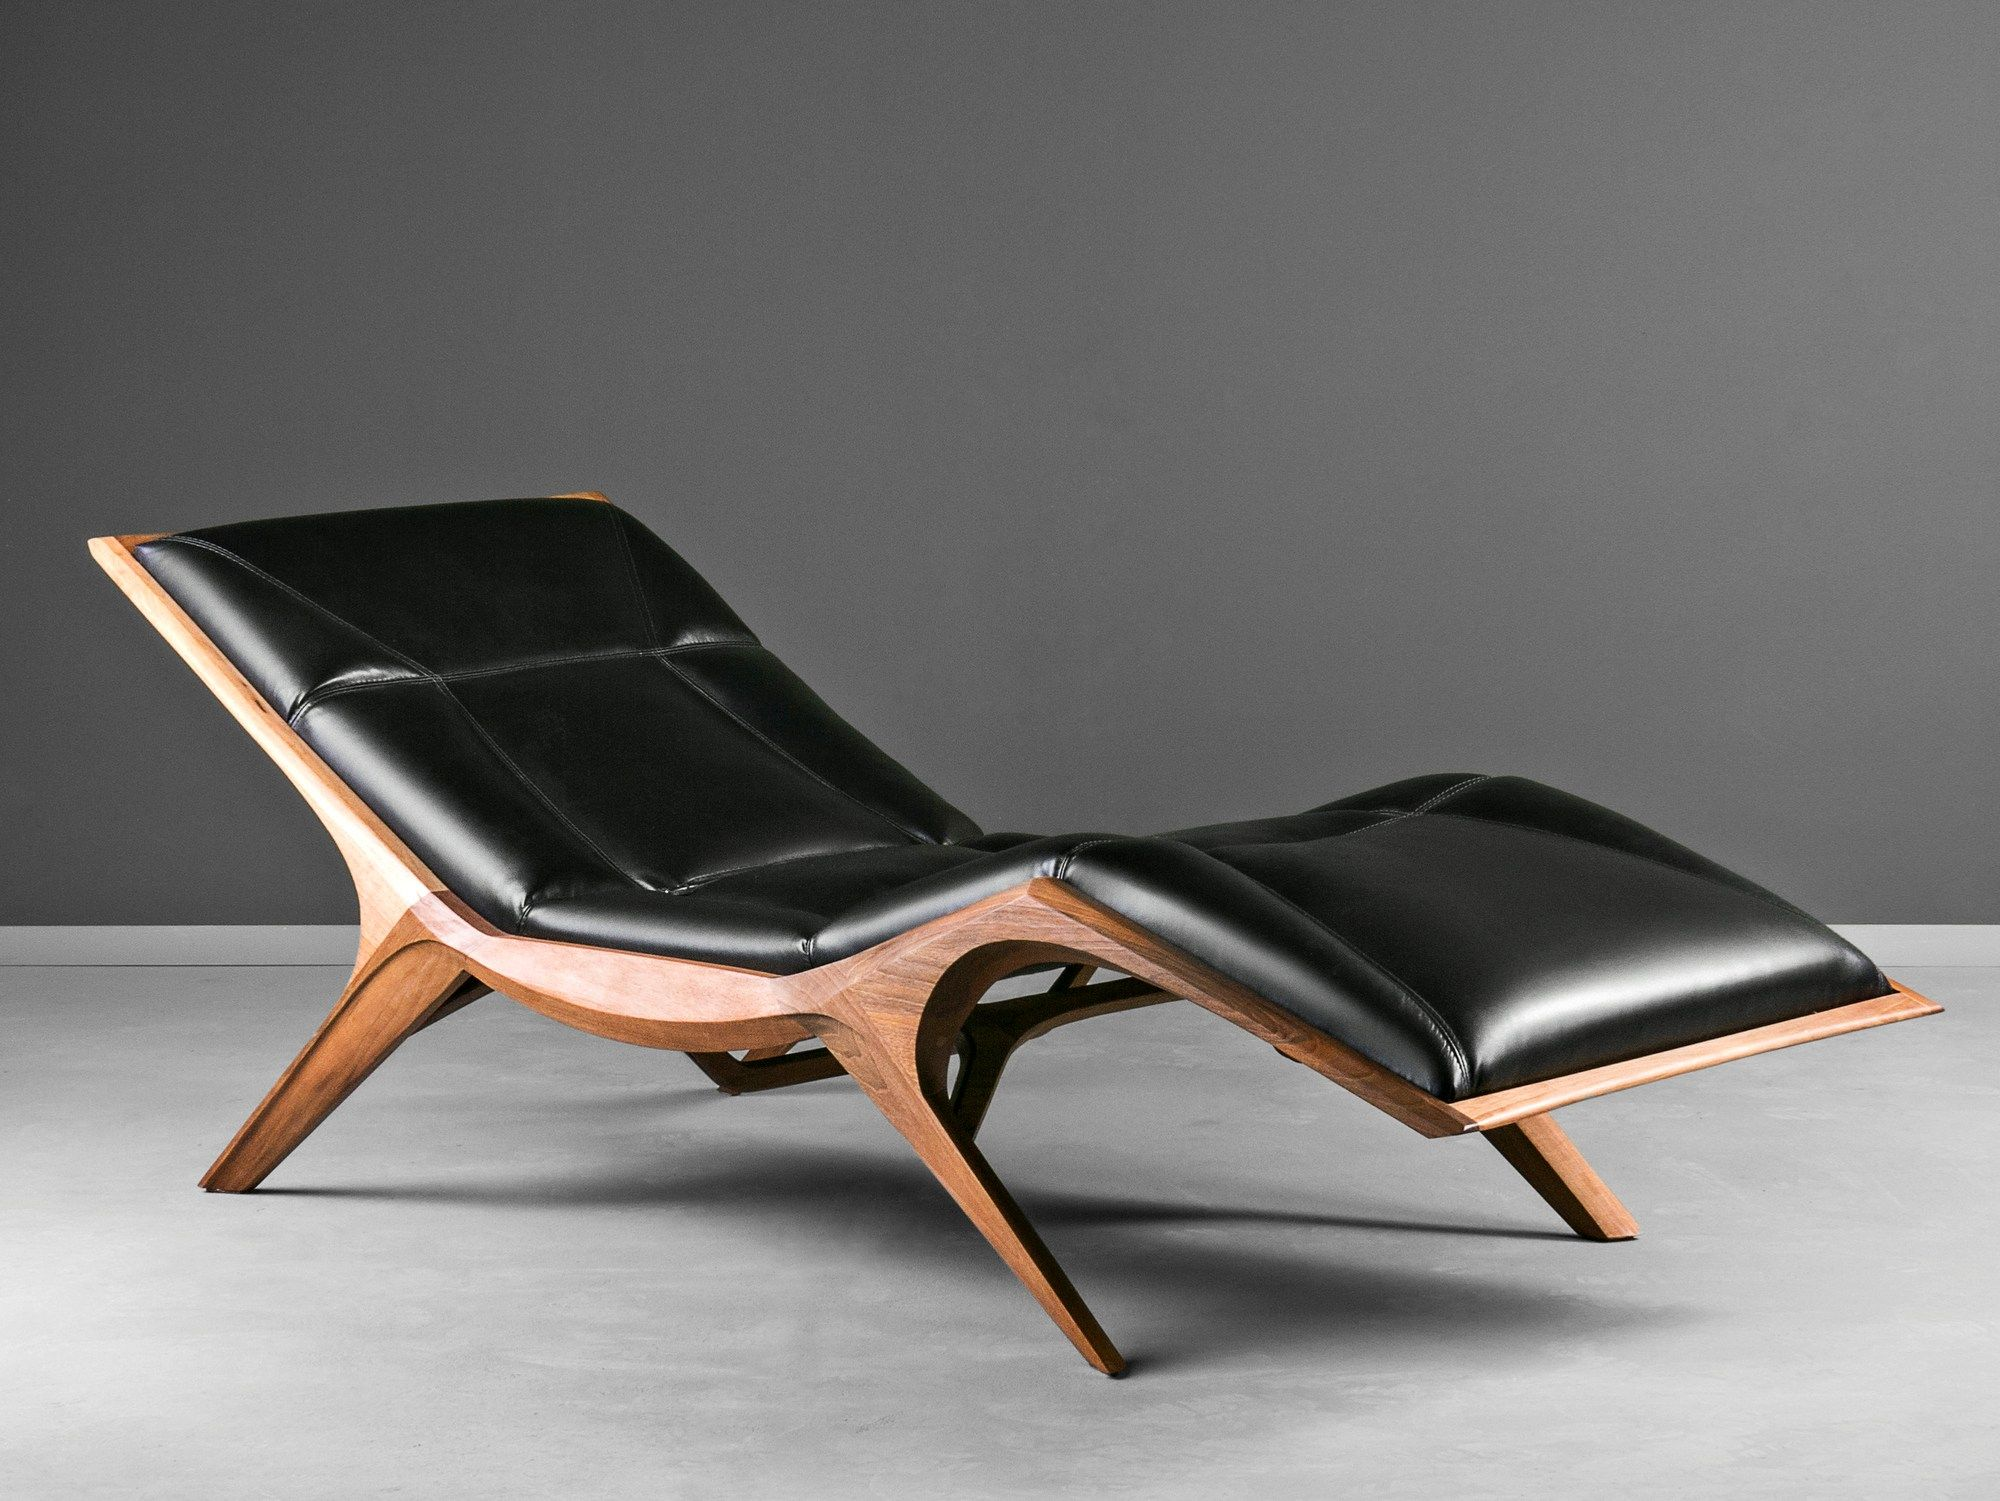 Upholstered Leather Chaise Longue Insekt By Hookl Und Stool Design